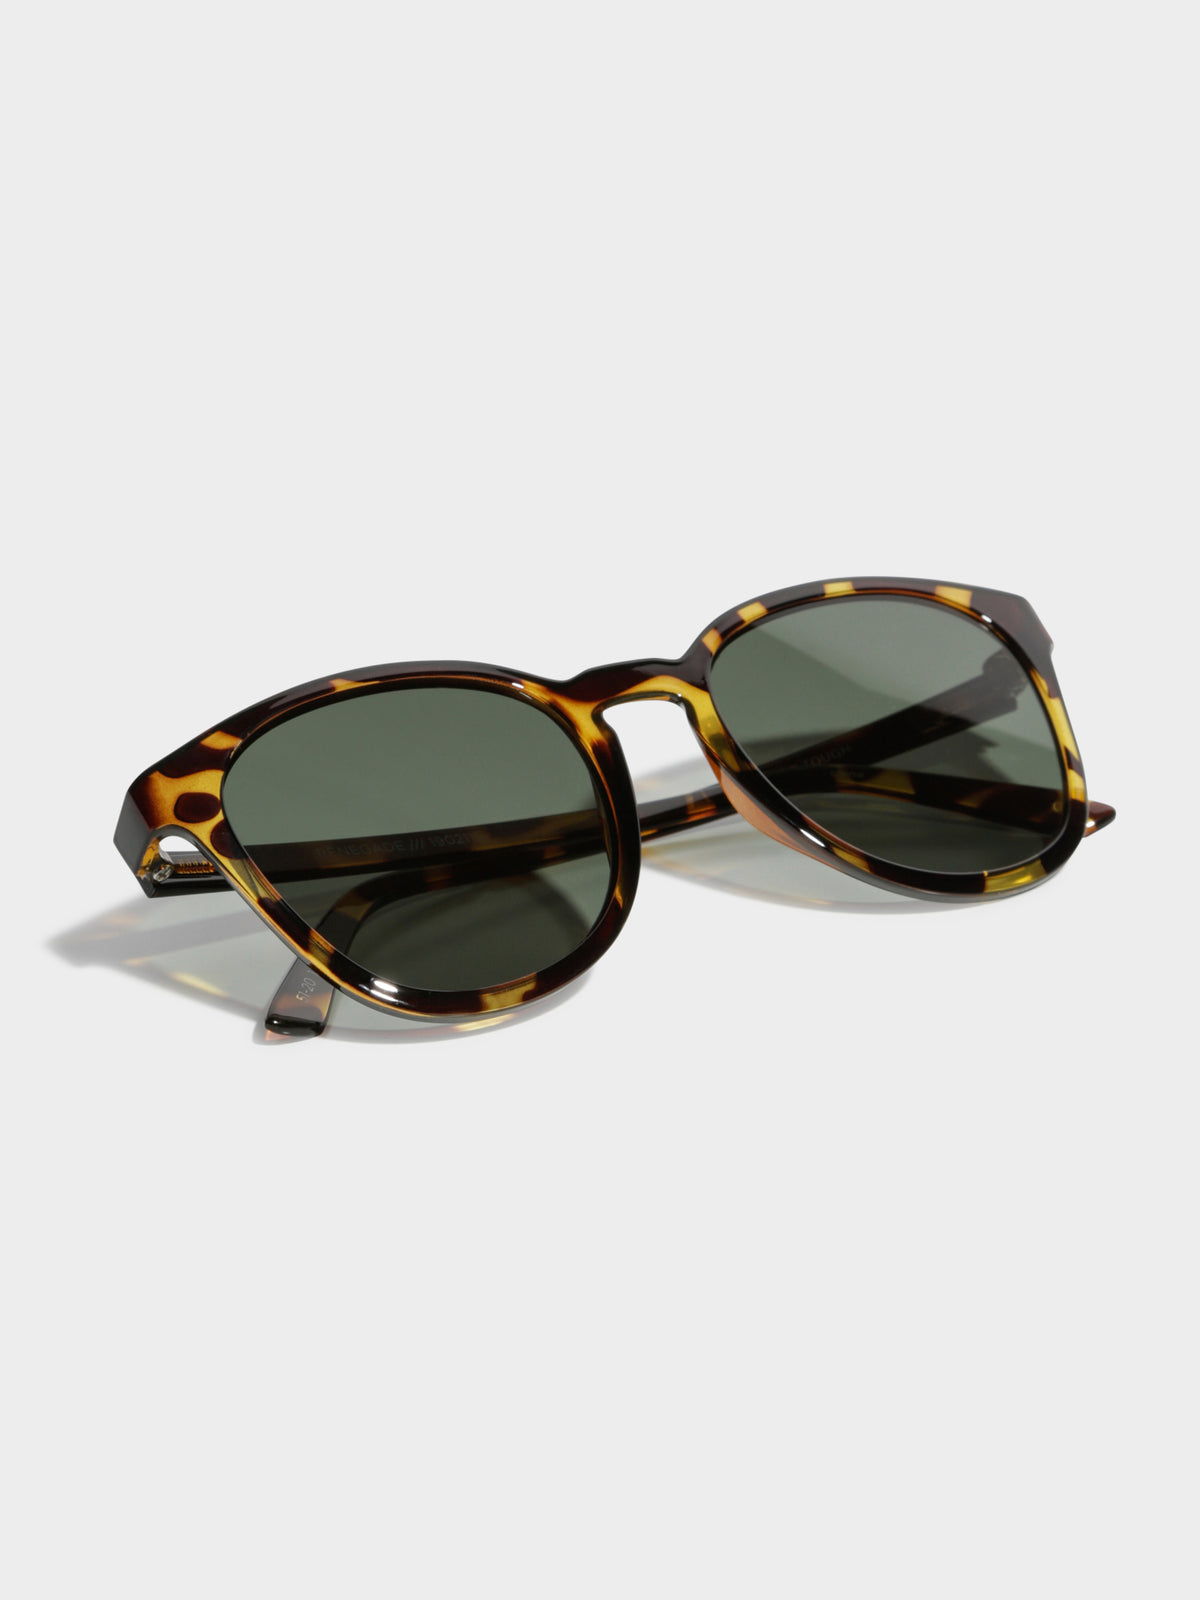 Renegade Sunglasses in Syrup Tortoiseshell